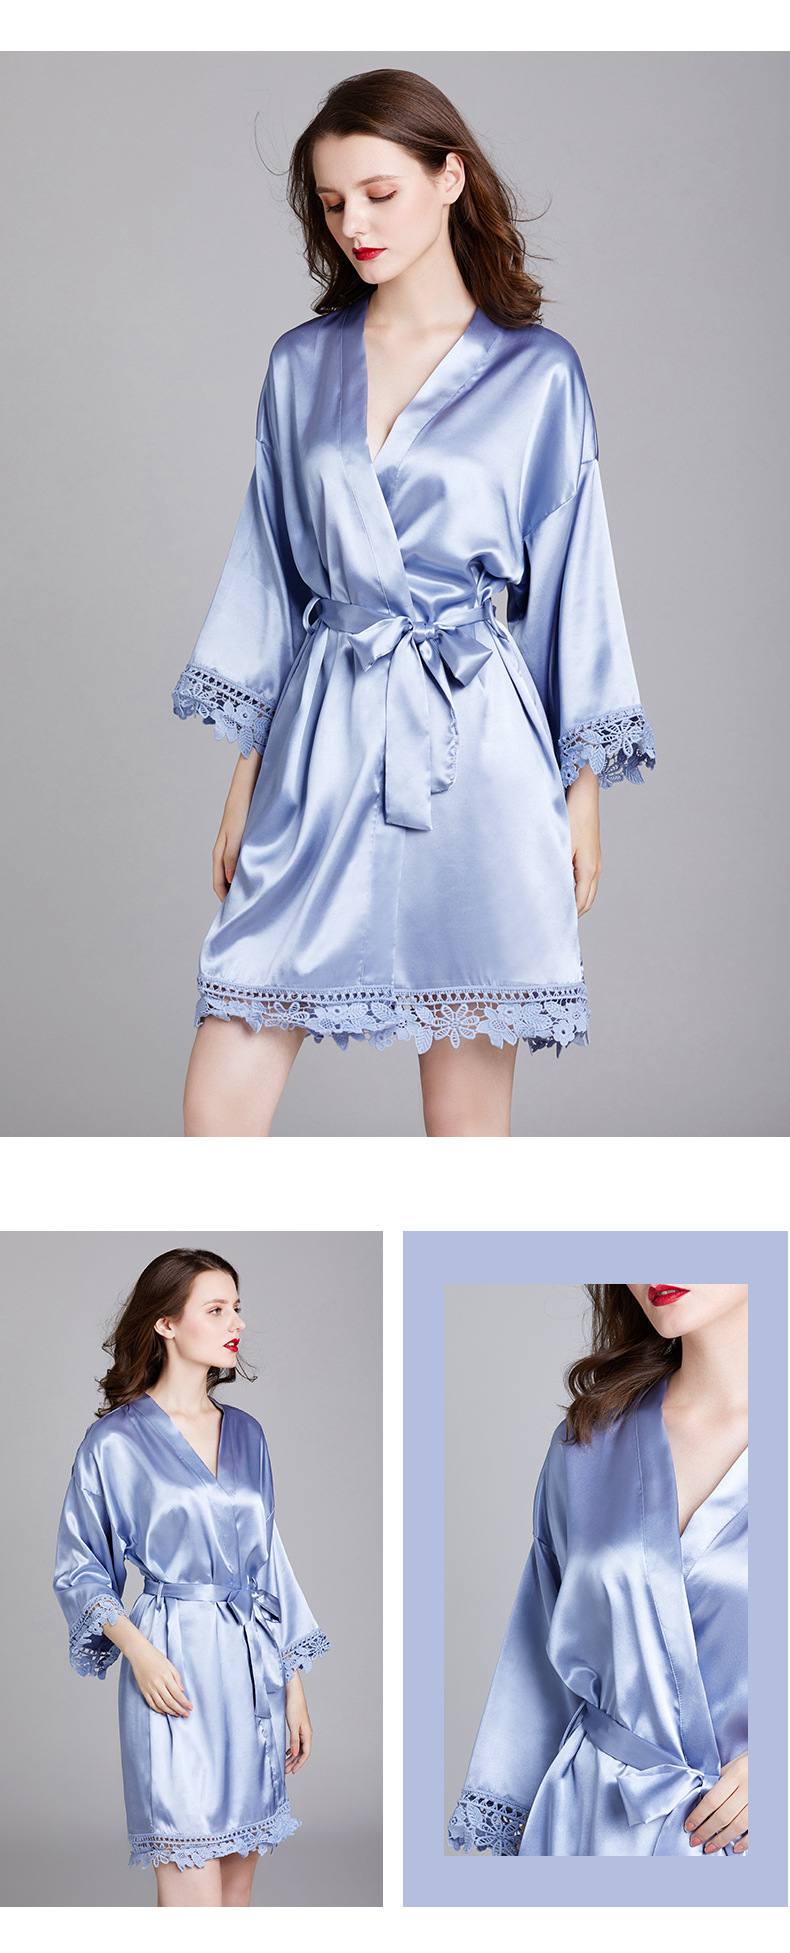 pajamas ladies spring and summer long-sleeved plus size silk home bathrobes robe robe bathrobe bridesmaid morning robe wholesale nihaojewelry NHJO224107